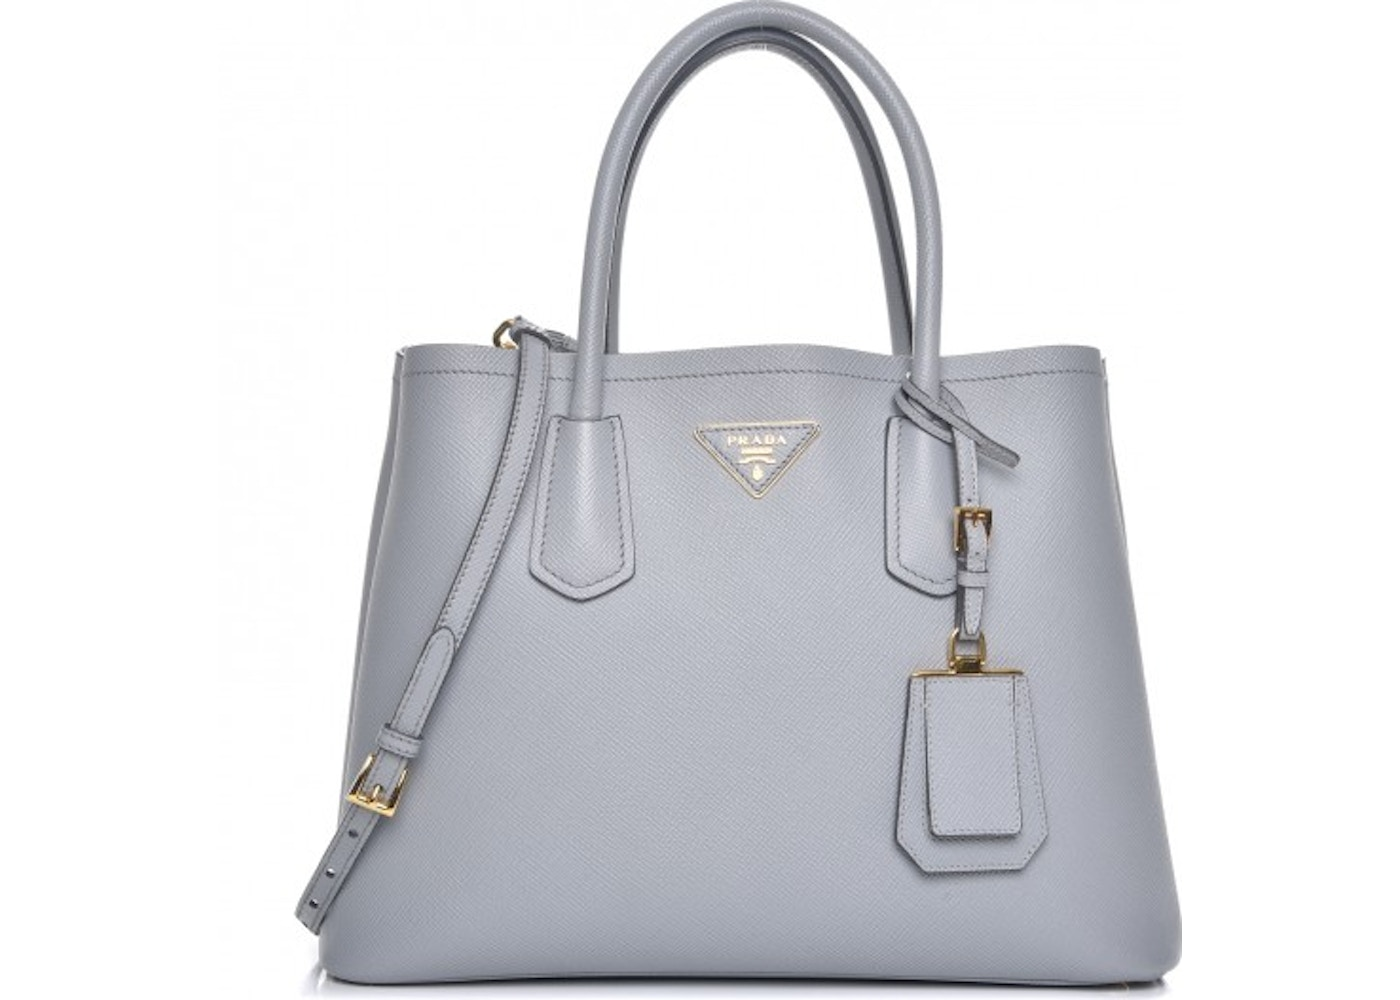 d5a1649b724f Prada Double Handle Tote Saffiano Cuir With Accessories Small ...